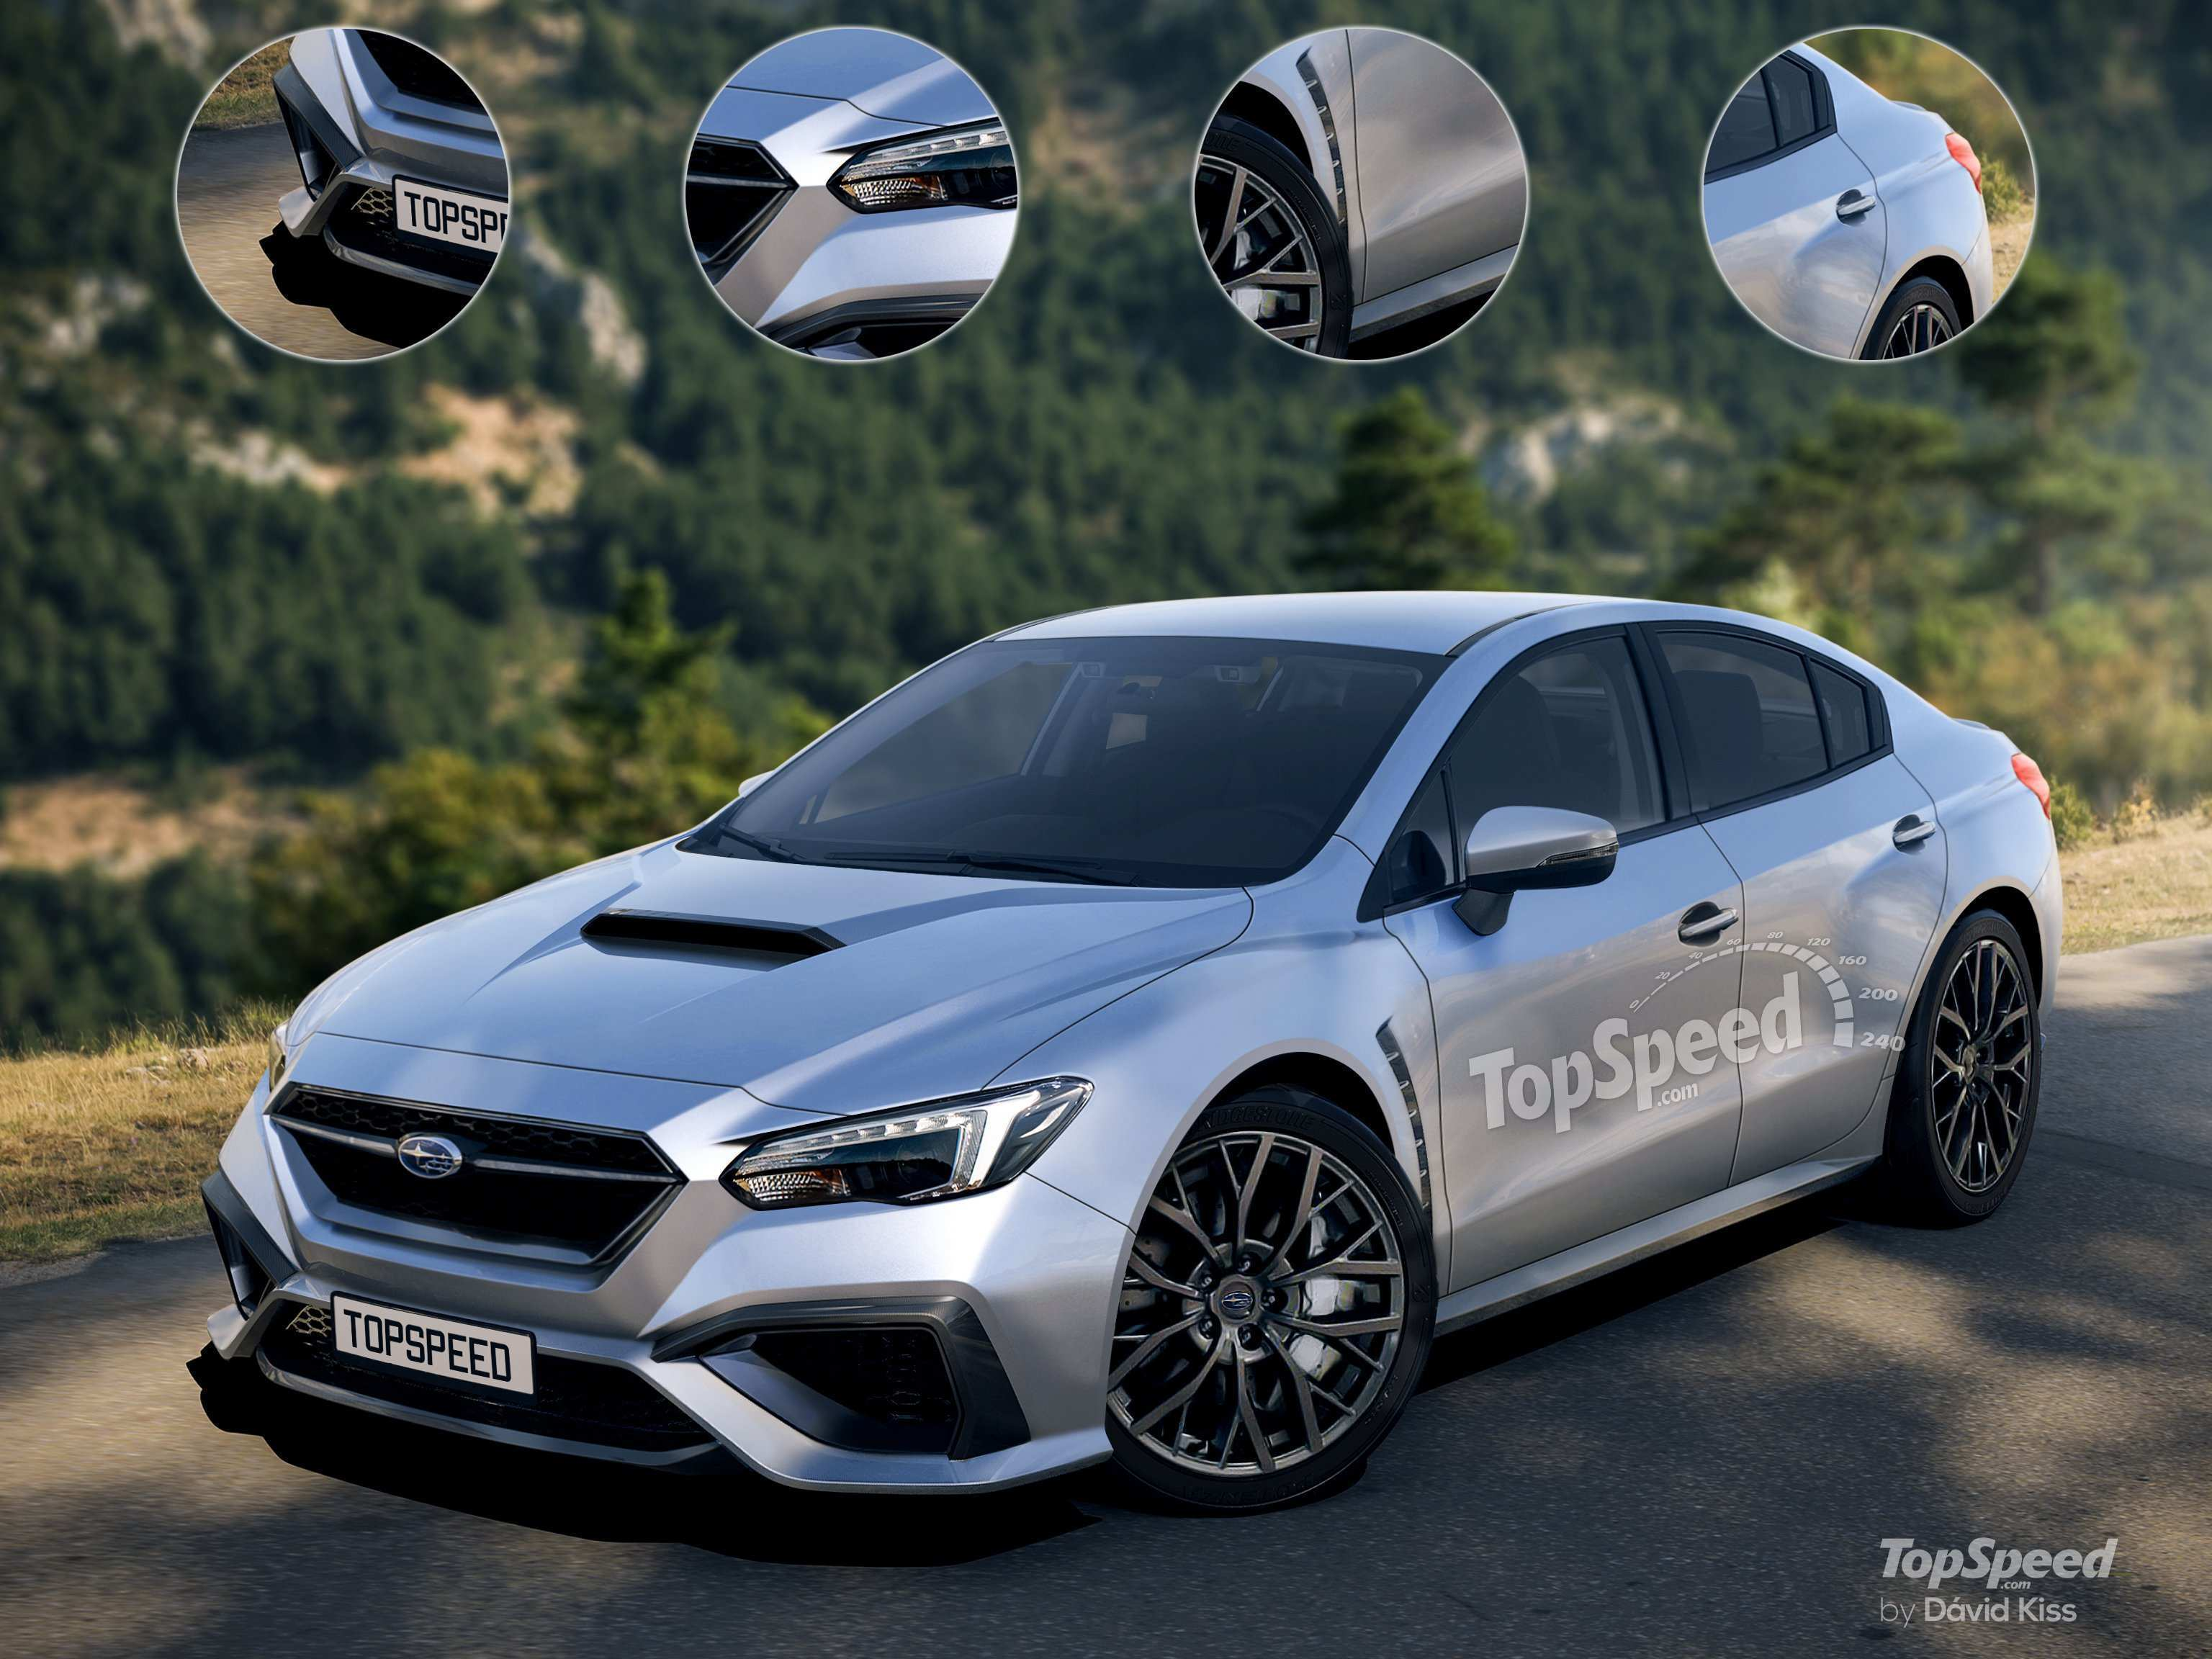 79 Great 2020 Subaru Eyesight Standard Price and Review for 2020 Subaru Eyesight Standard